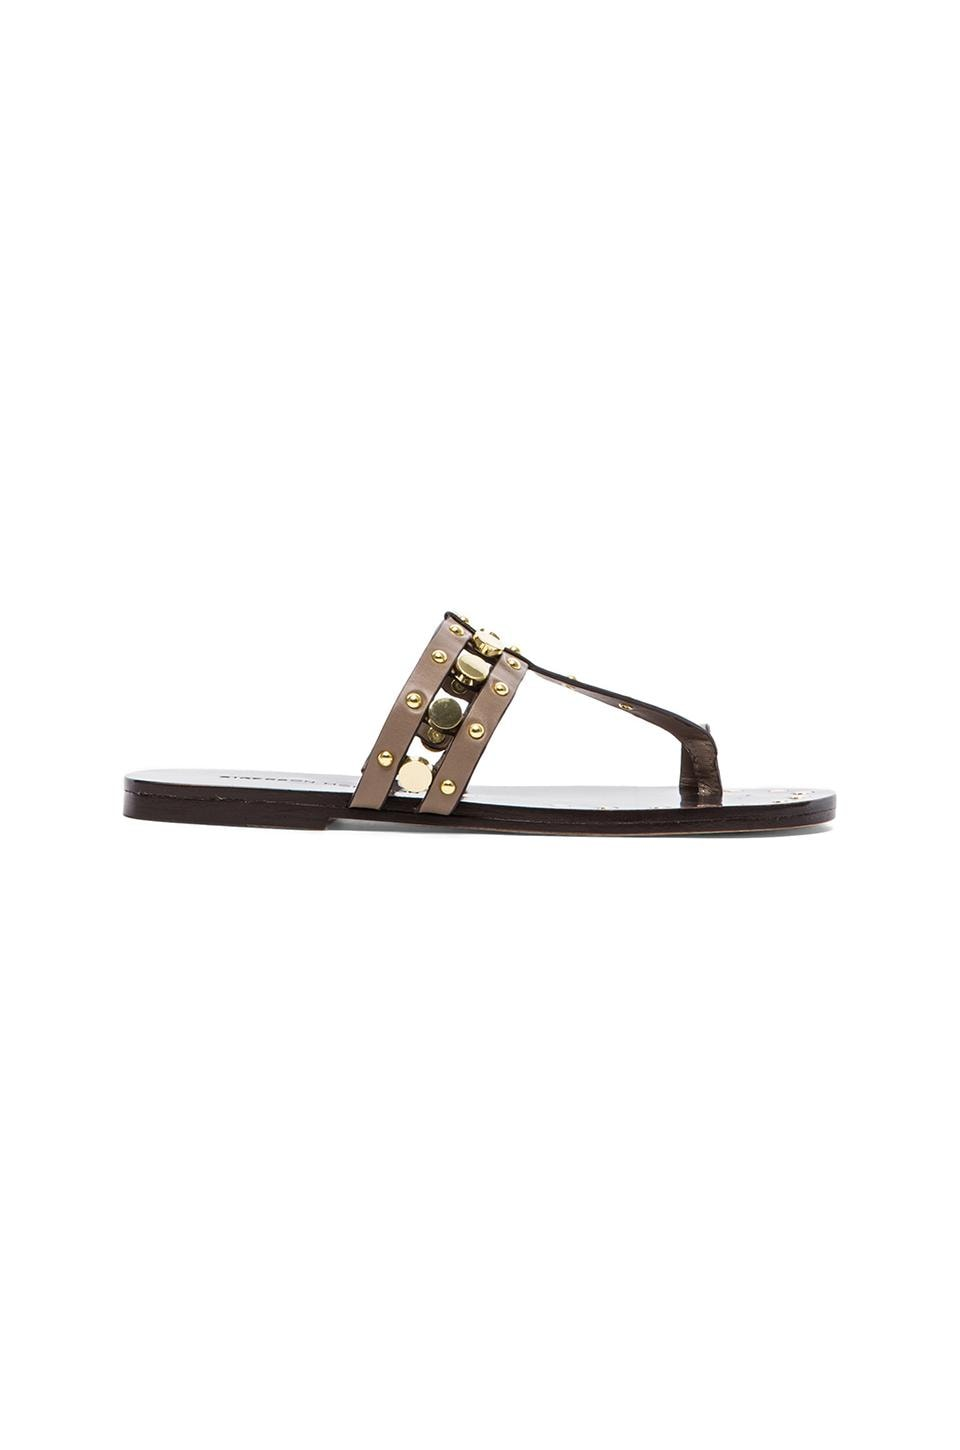 Sigerson Morrison Buffy Sandal in Taupe